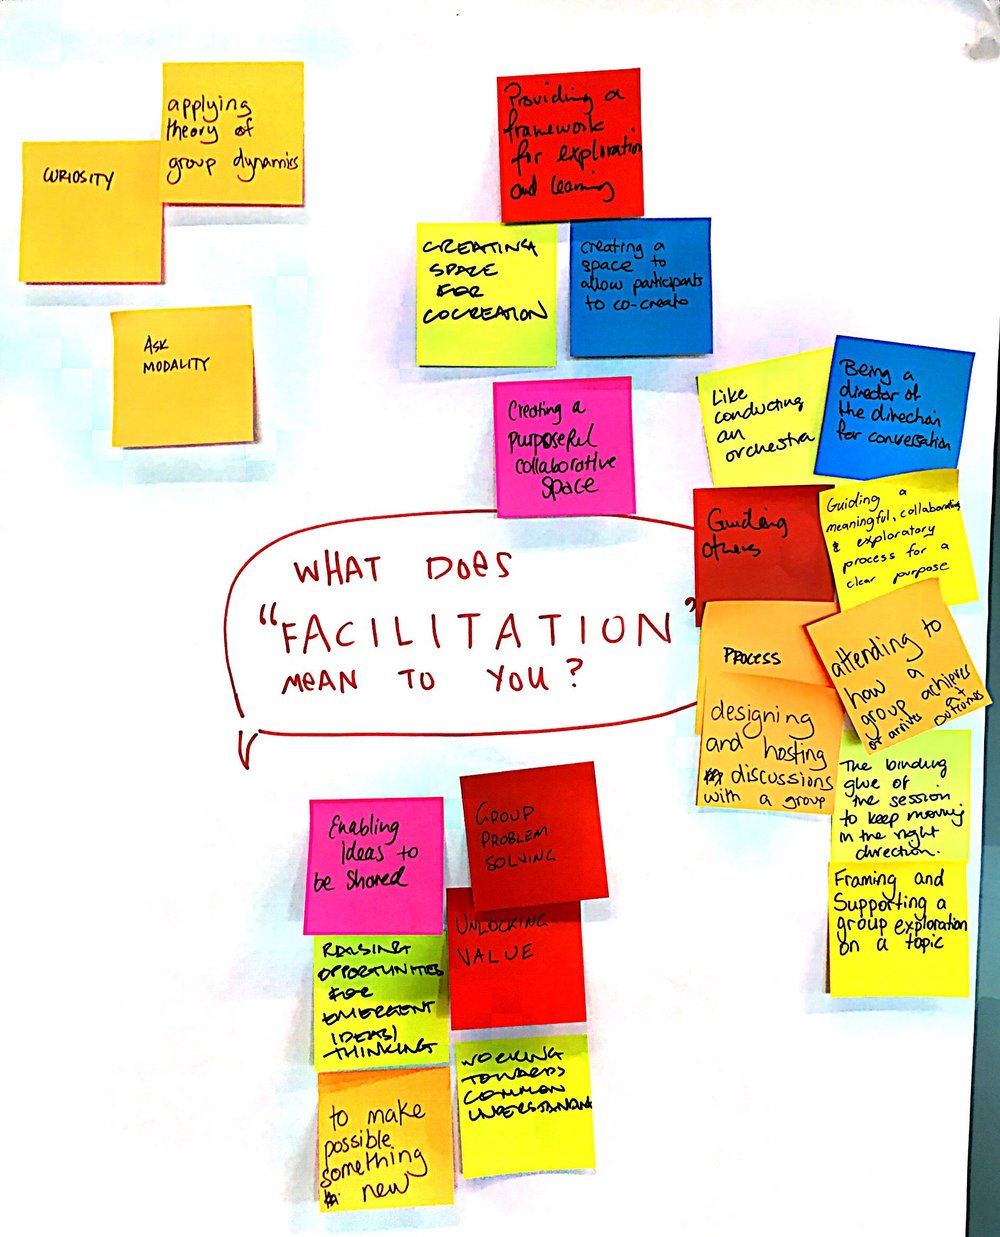 What does Facilitation mean to you?